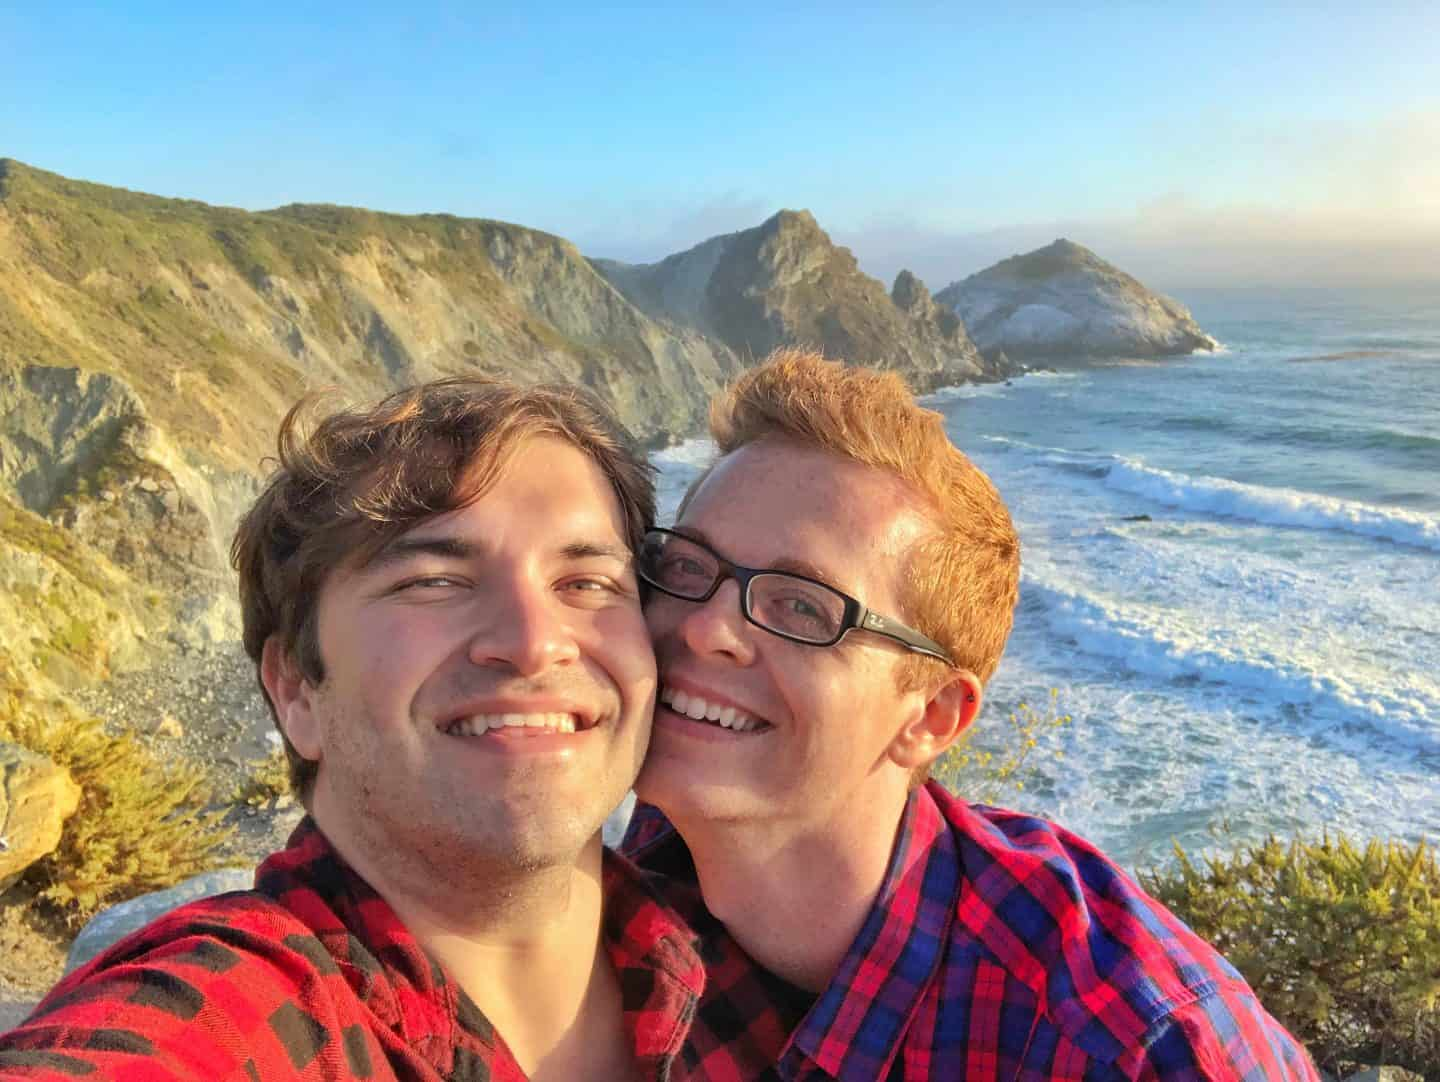 Gay Big Sur - Gay holiday in Big Sur